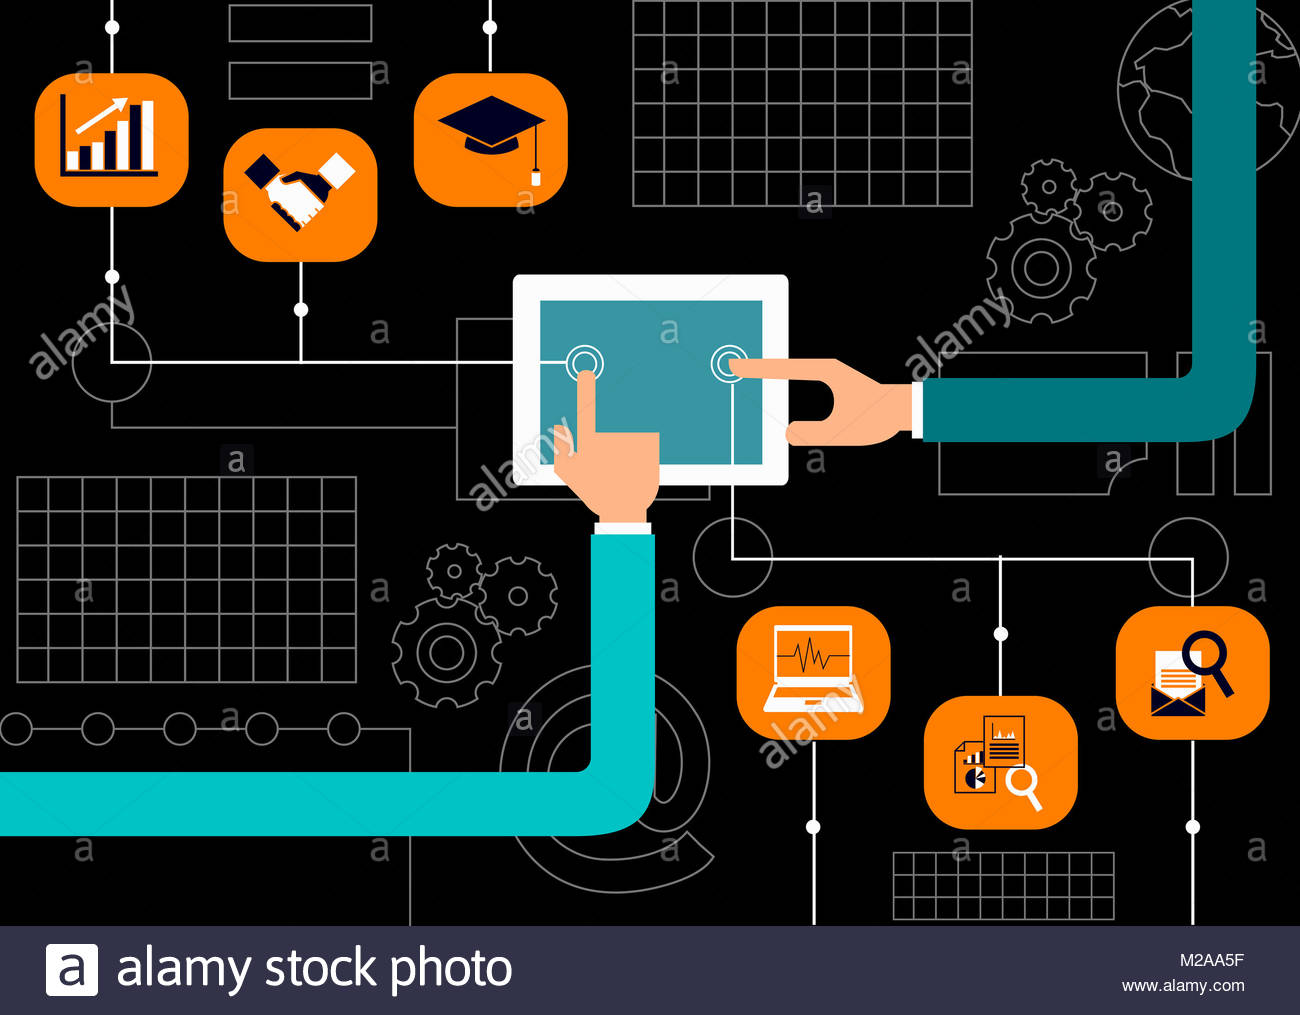 Hands using digital tablet for business and education - Stock Image